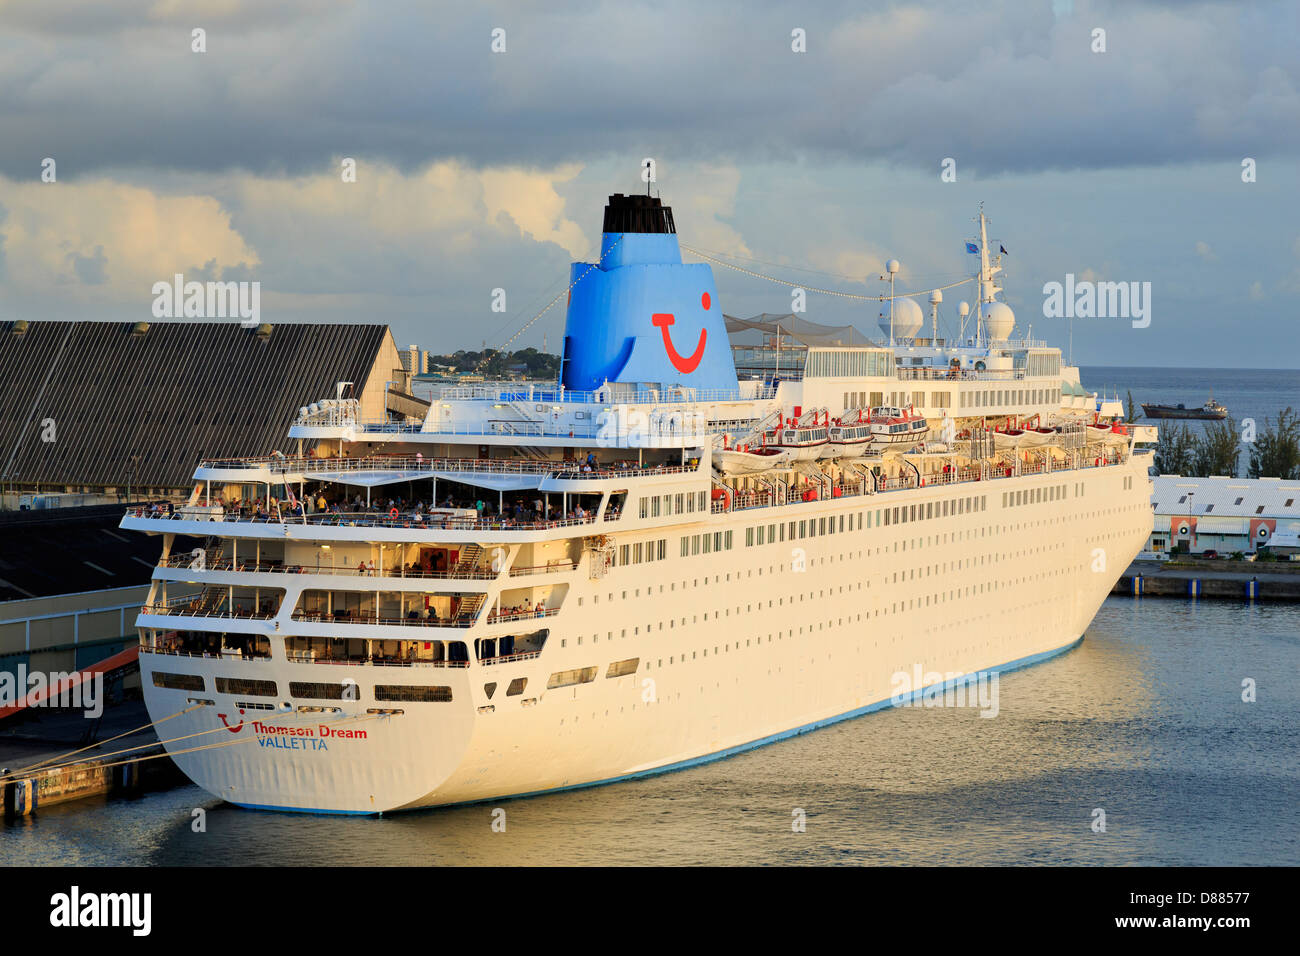 Thomson Dream Cruise Ship In Deep Water Stock Photo Royalty Free - The thomson dream cruise ship